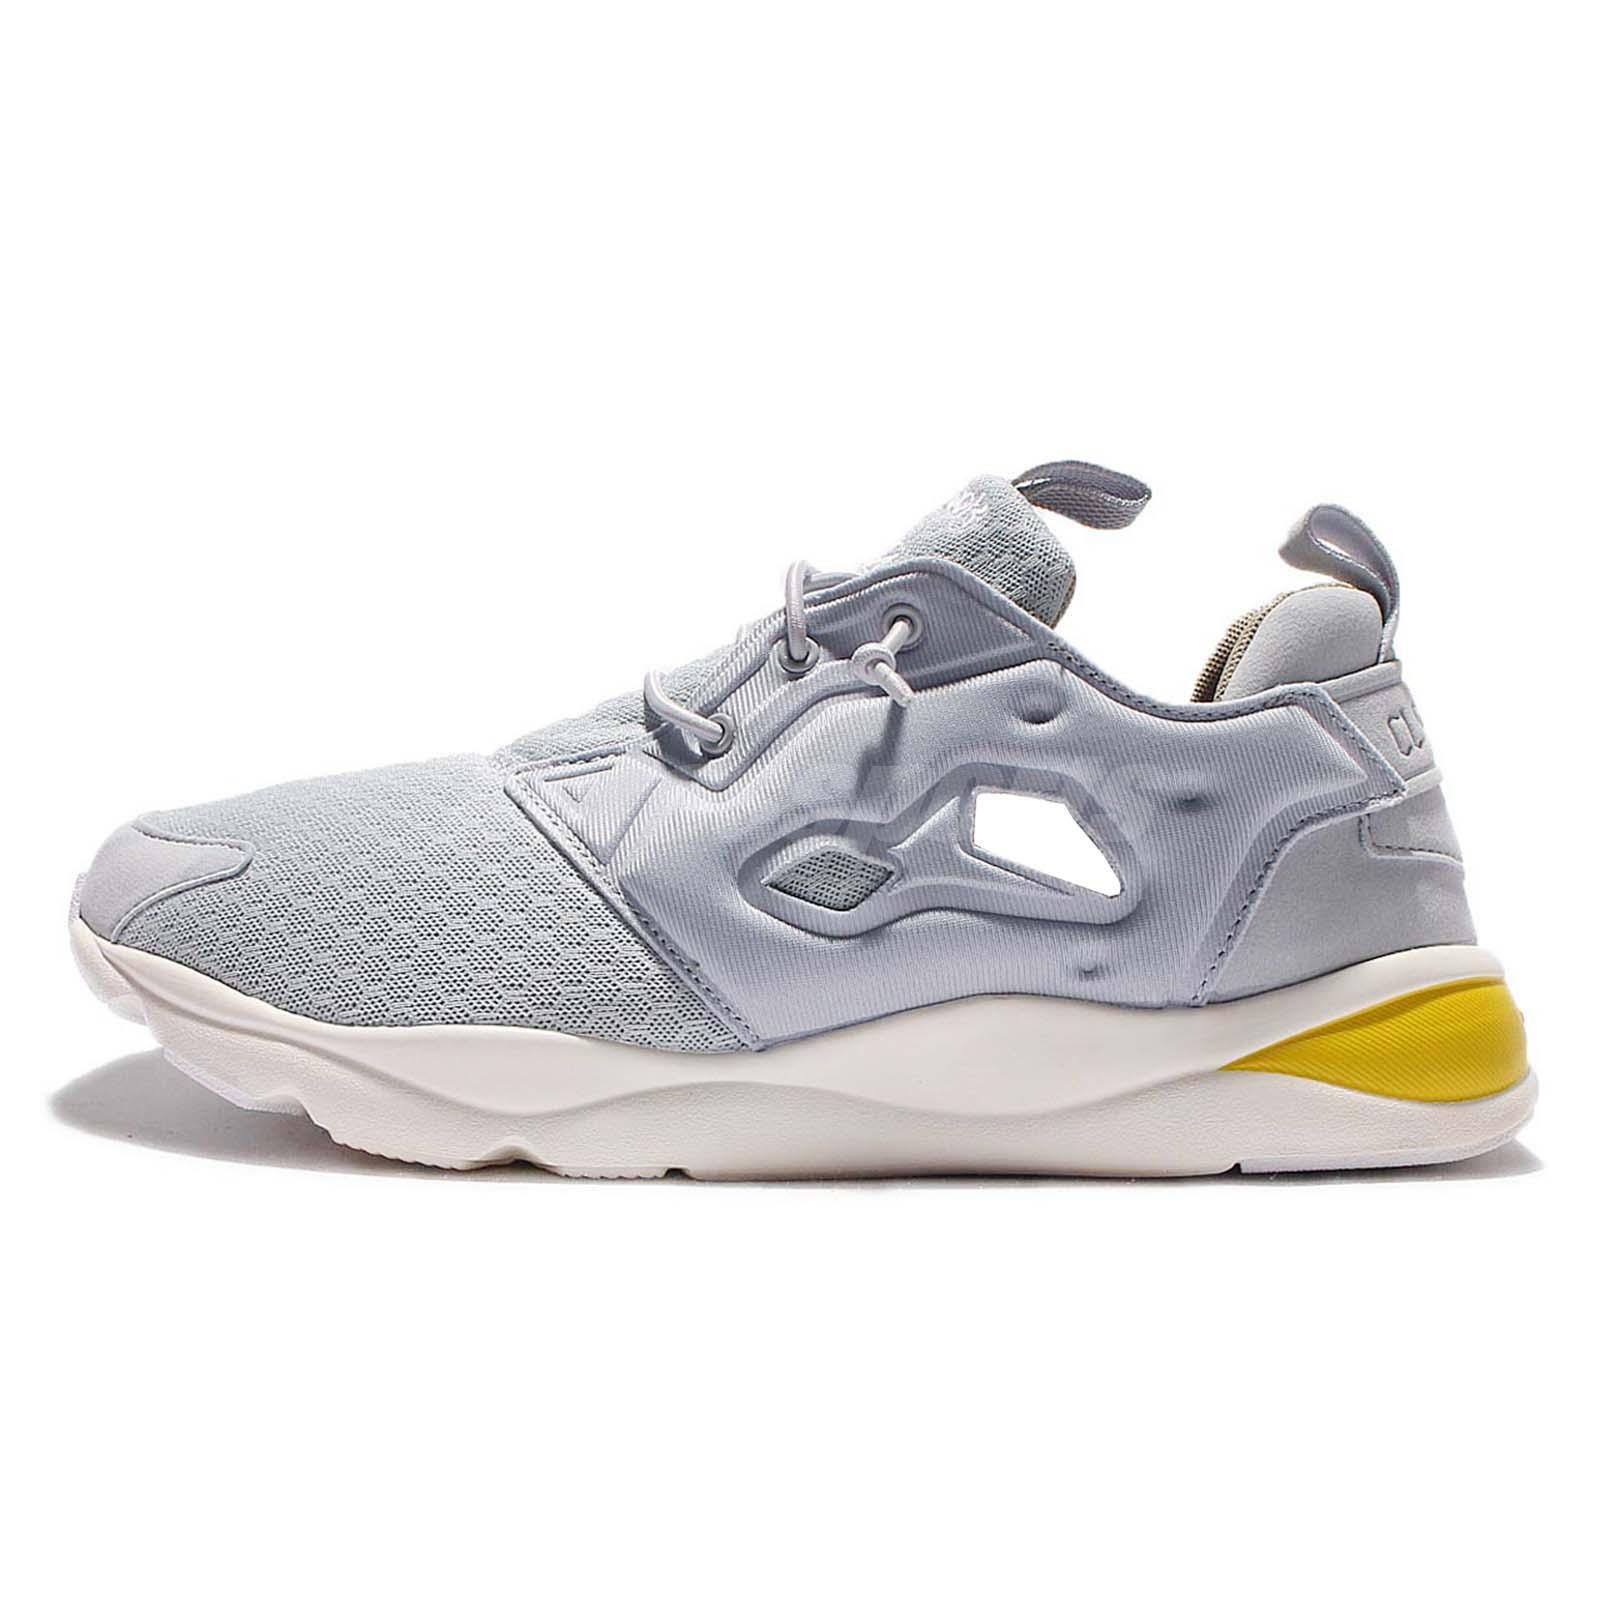 ... Reebok Furylite CLSHX Grey Yellow Mens Casual Shoes Sneakers Trainers  AR1321 ... f0dc37cc1